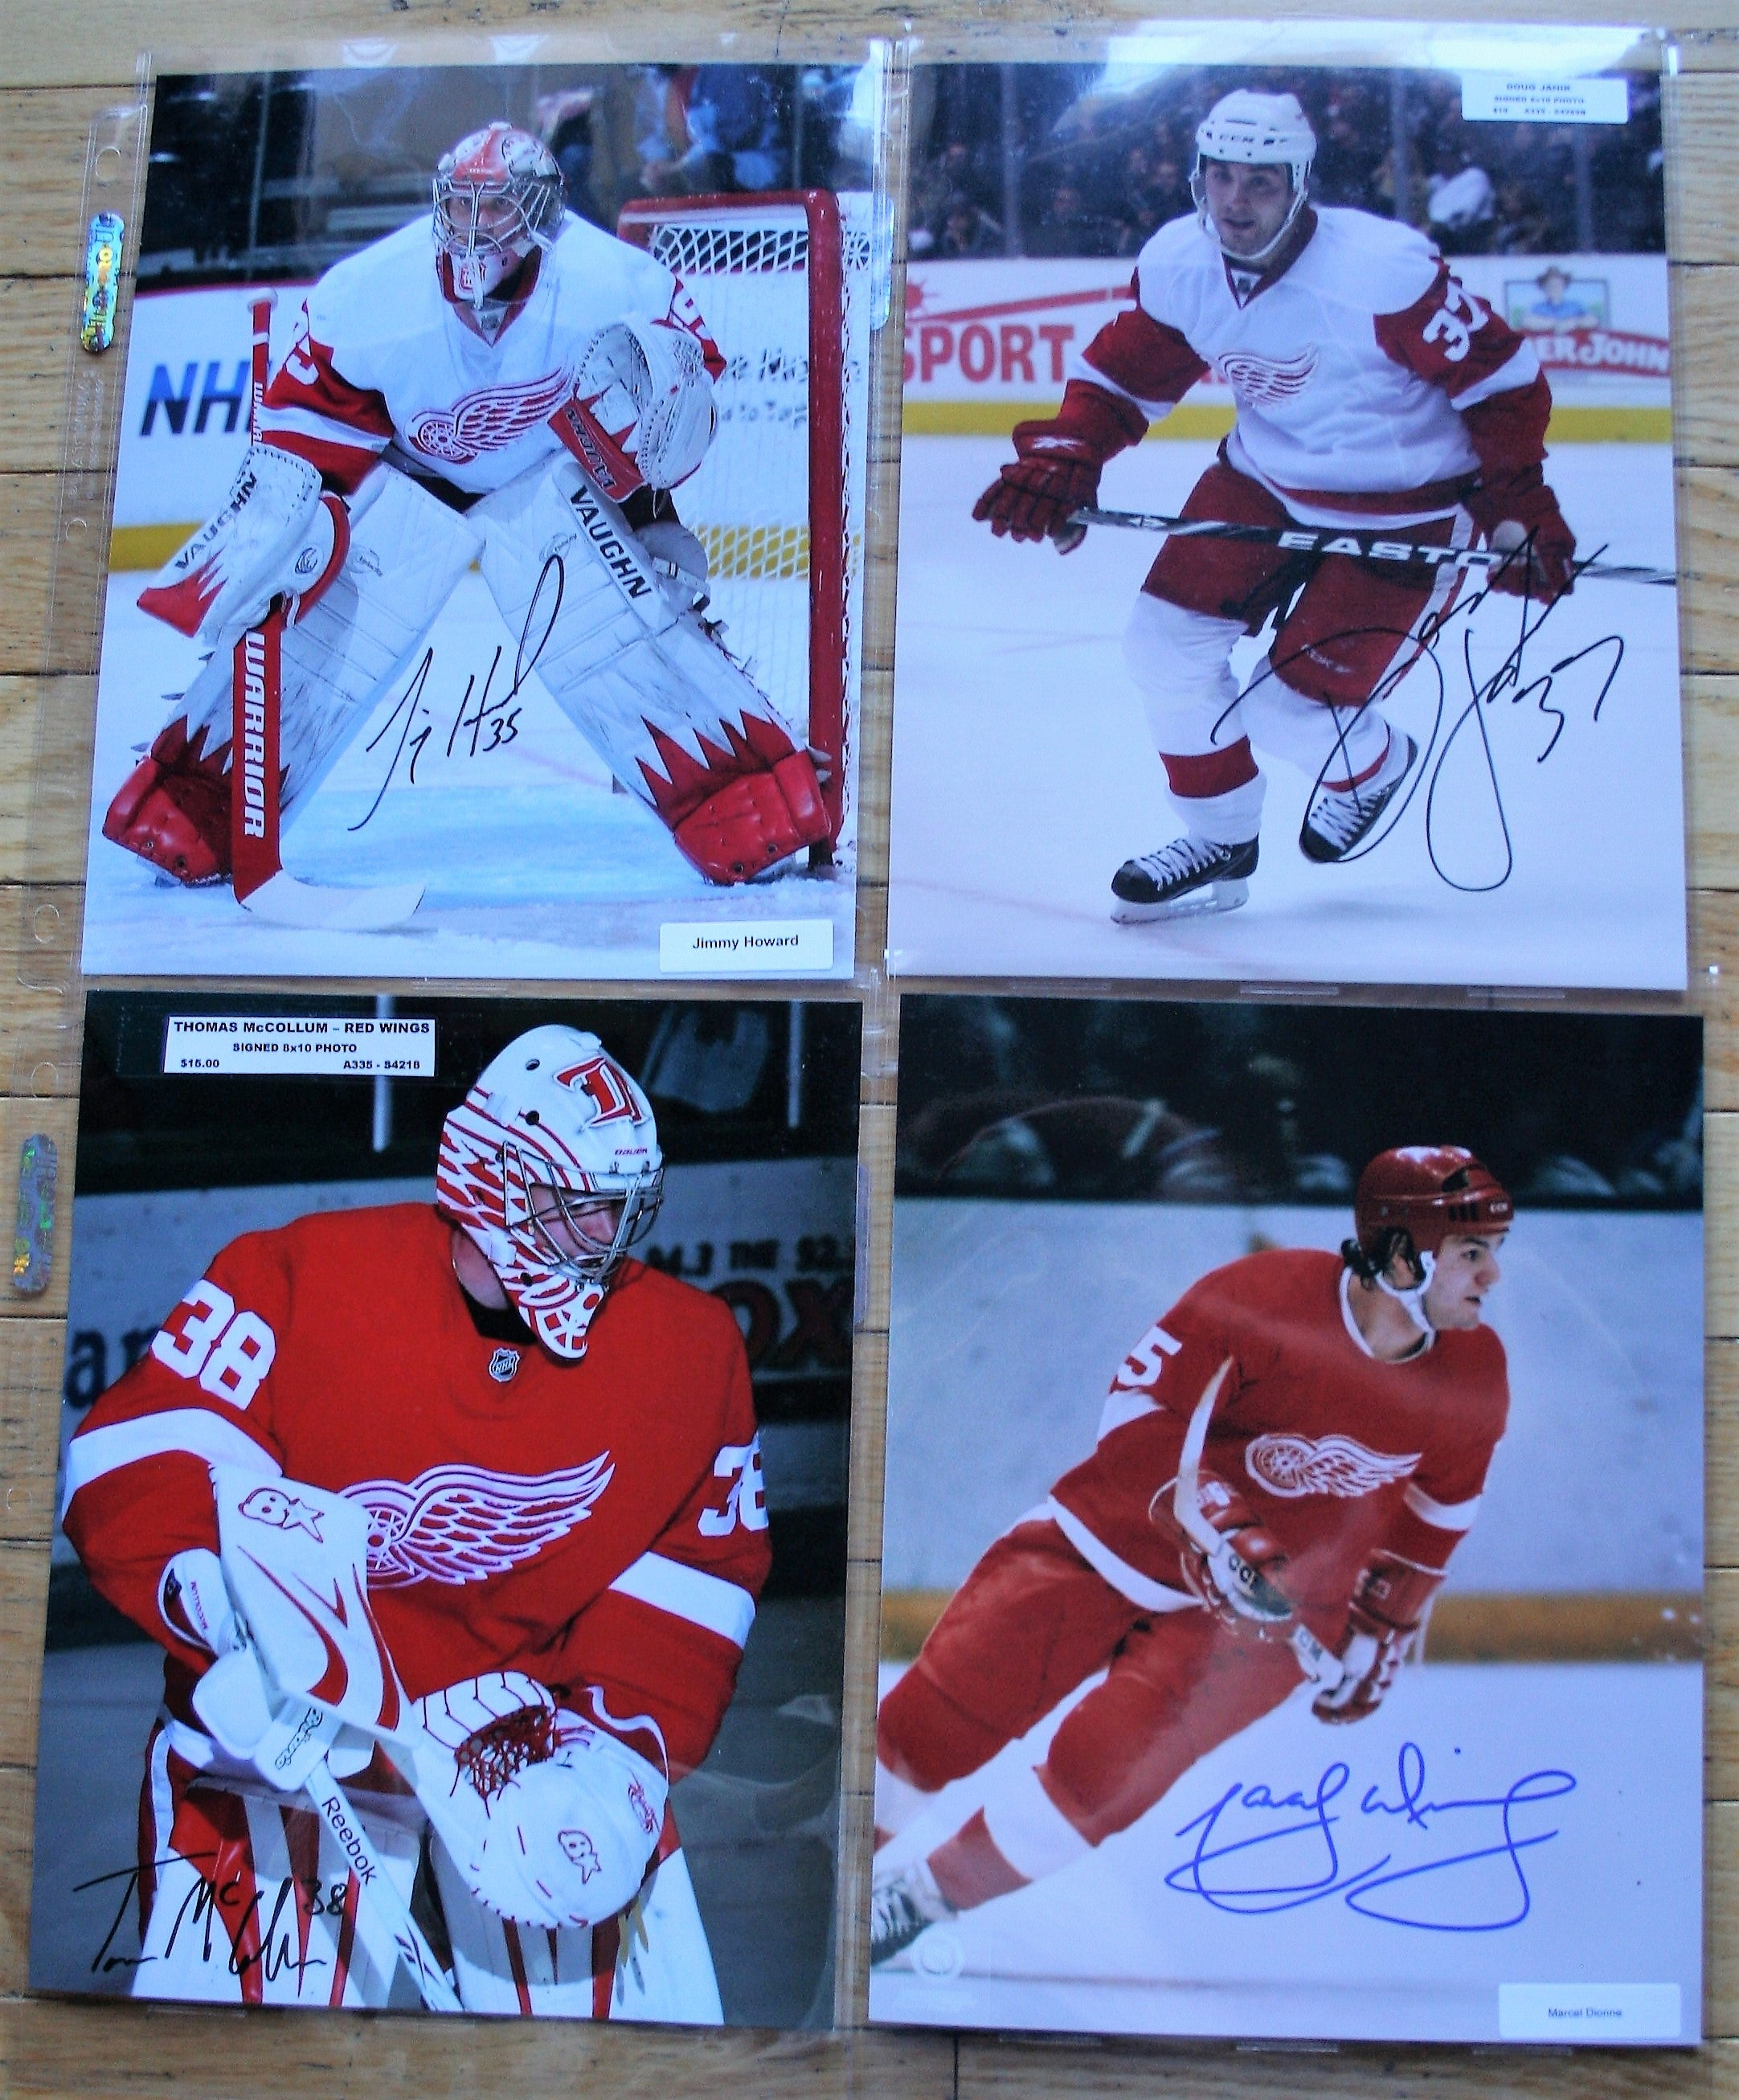 4 Signed Detroit RW 8x10 Photos  Howard, Janik, McCollum, Dionne  FREE SHIPPING  c/w COA  NHL Hockey Memorabilia